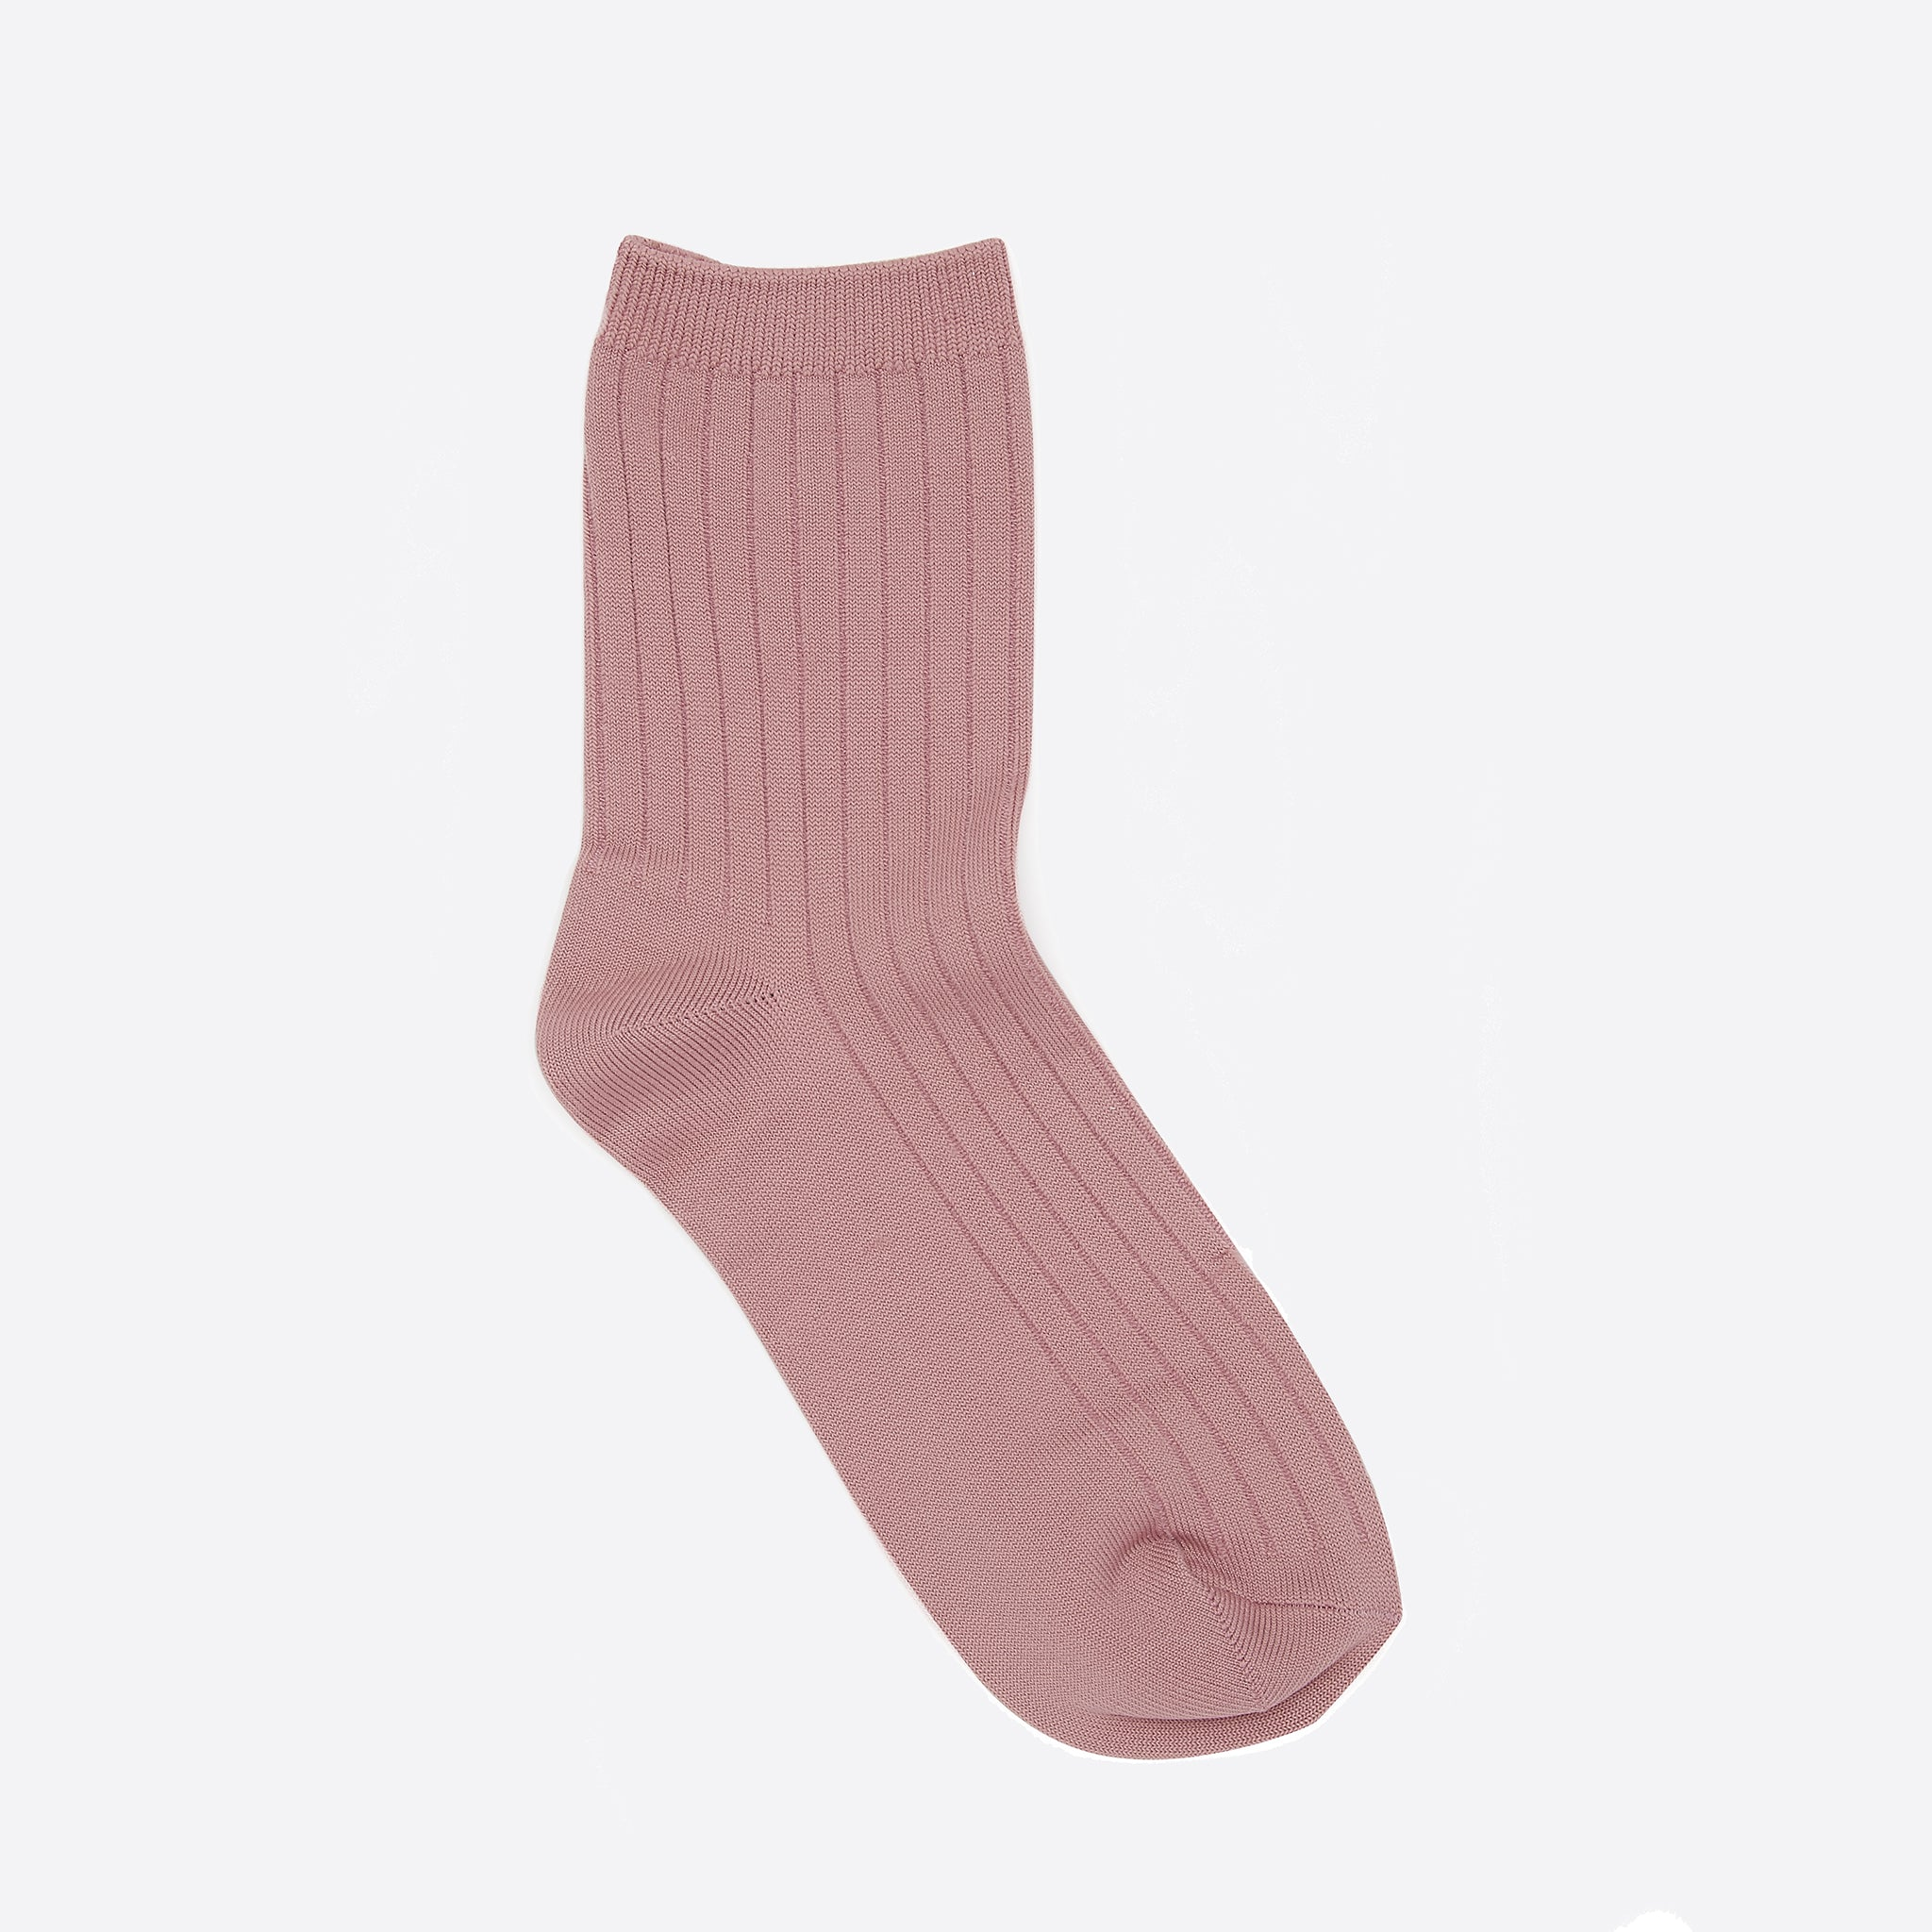 Le Bon Shoppe Her Socks in Desert Rose